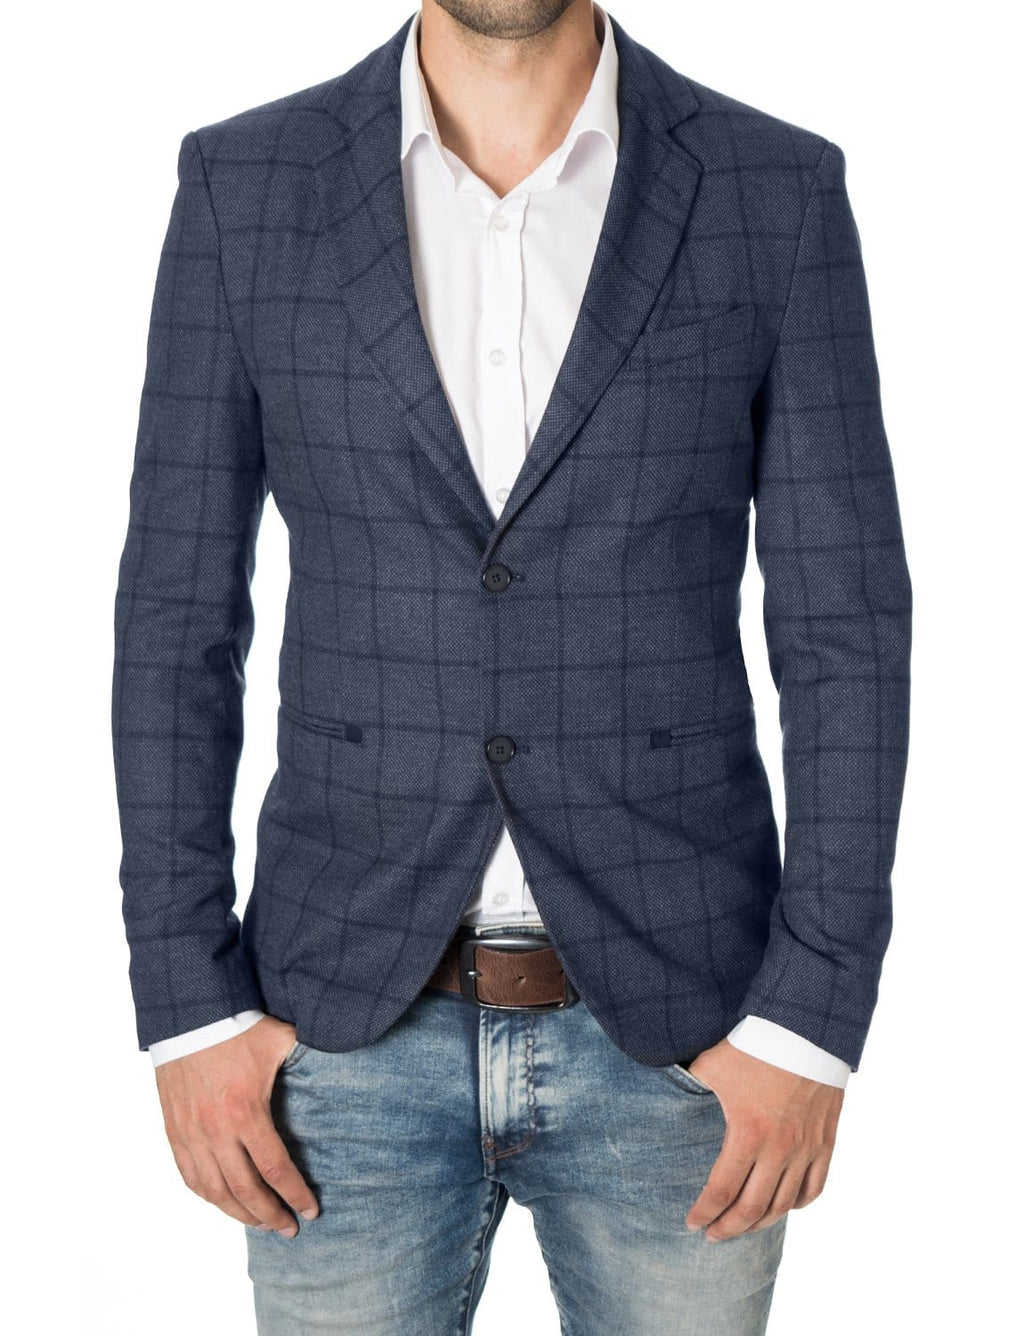 Mens slim fit casual checkered blazer navy blue (MOD14521B) - MODERNO